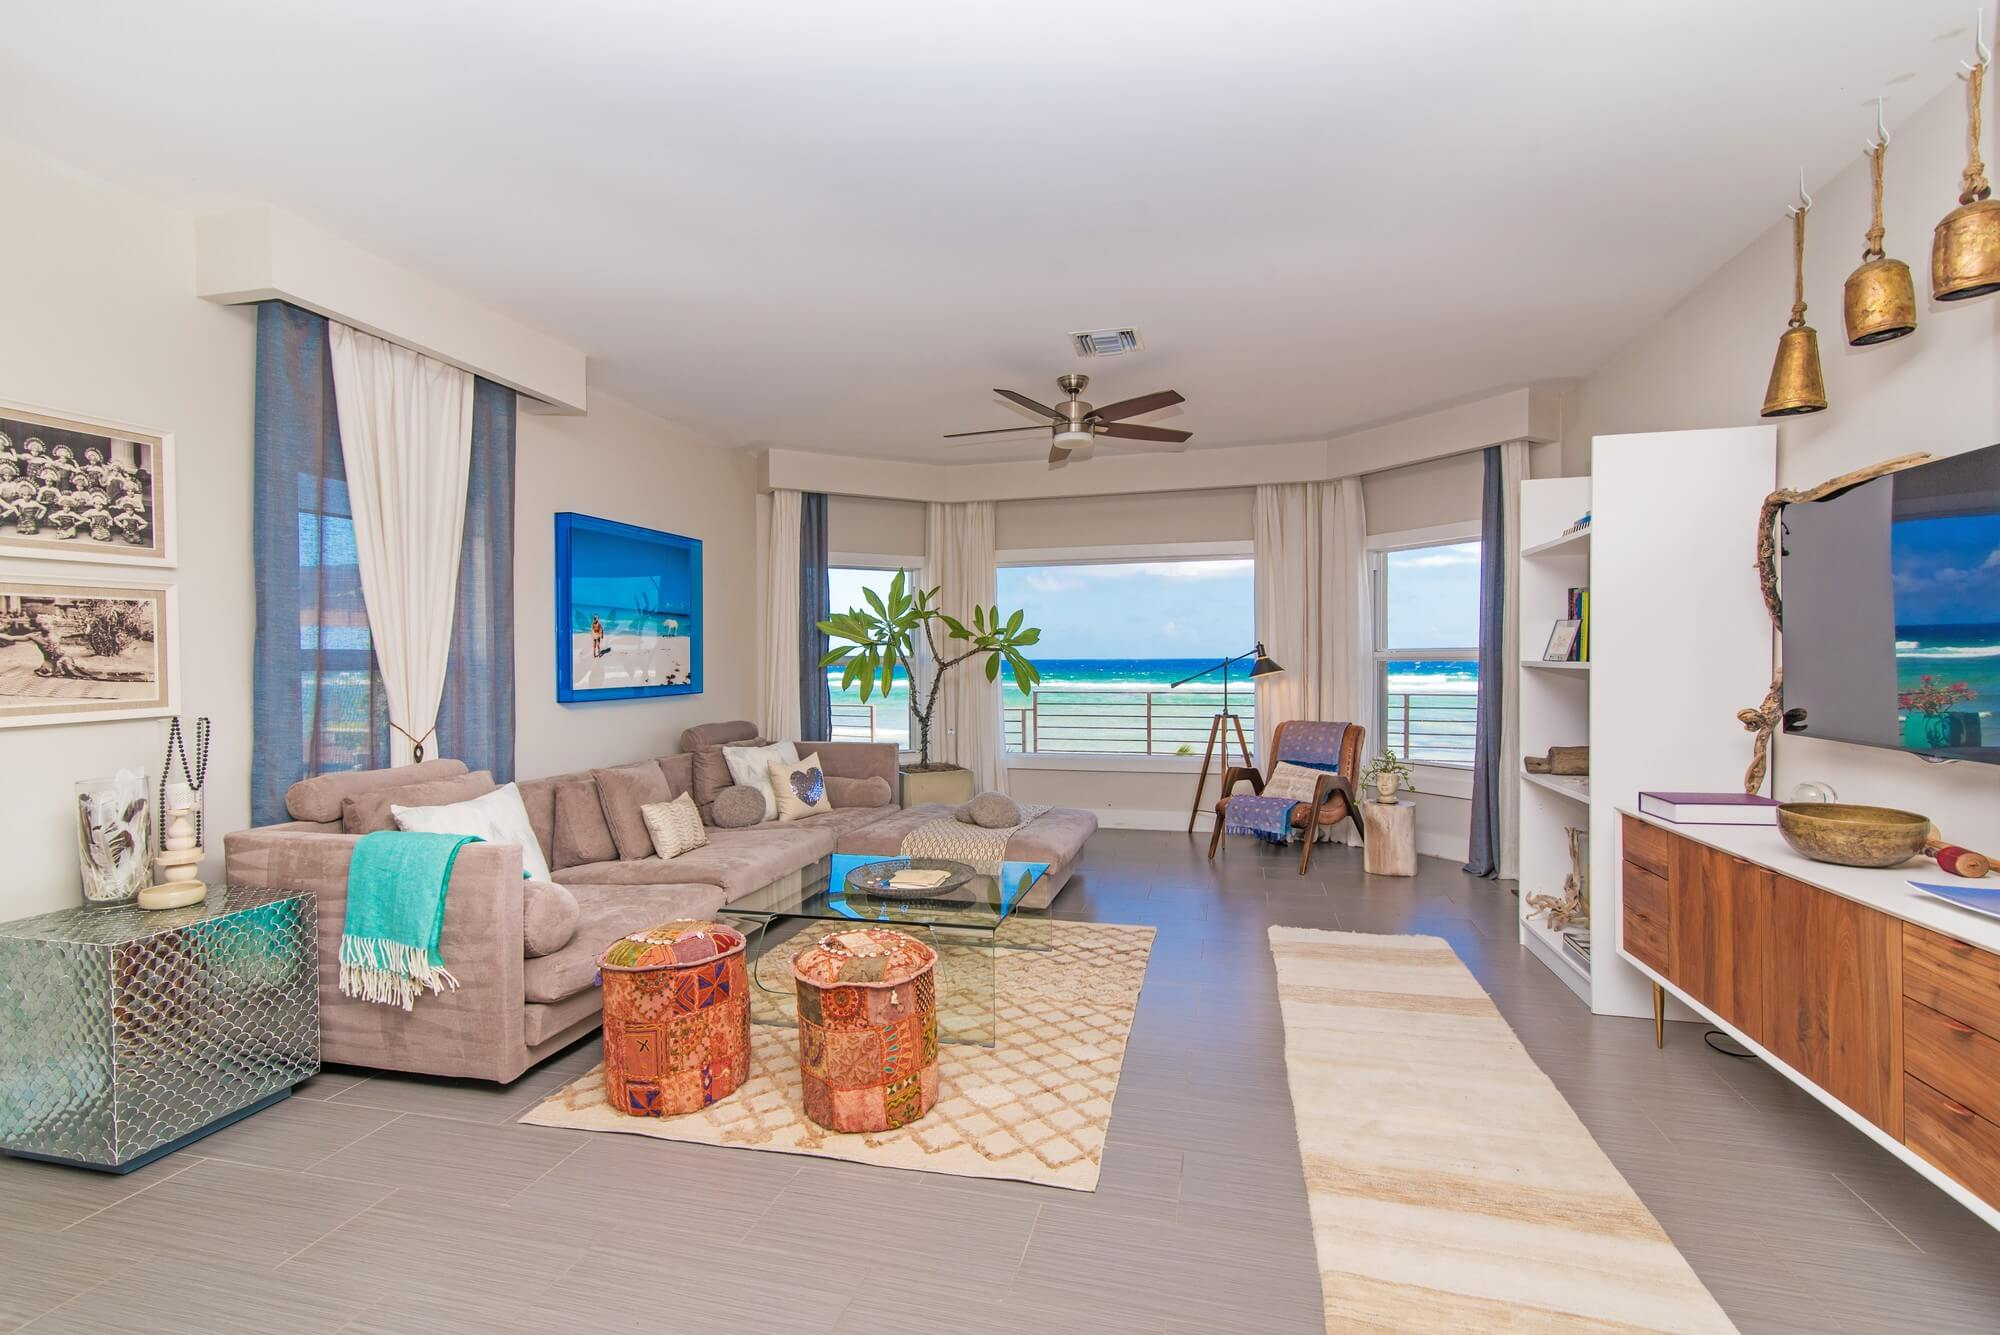 Searching for property in Cayman with Milestone - Image 2